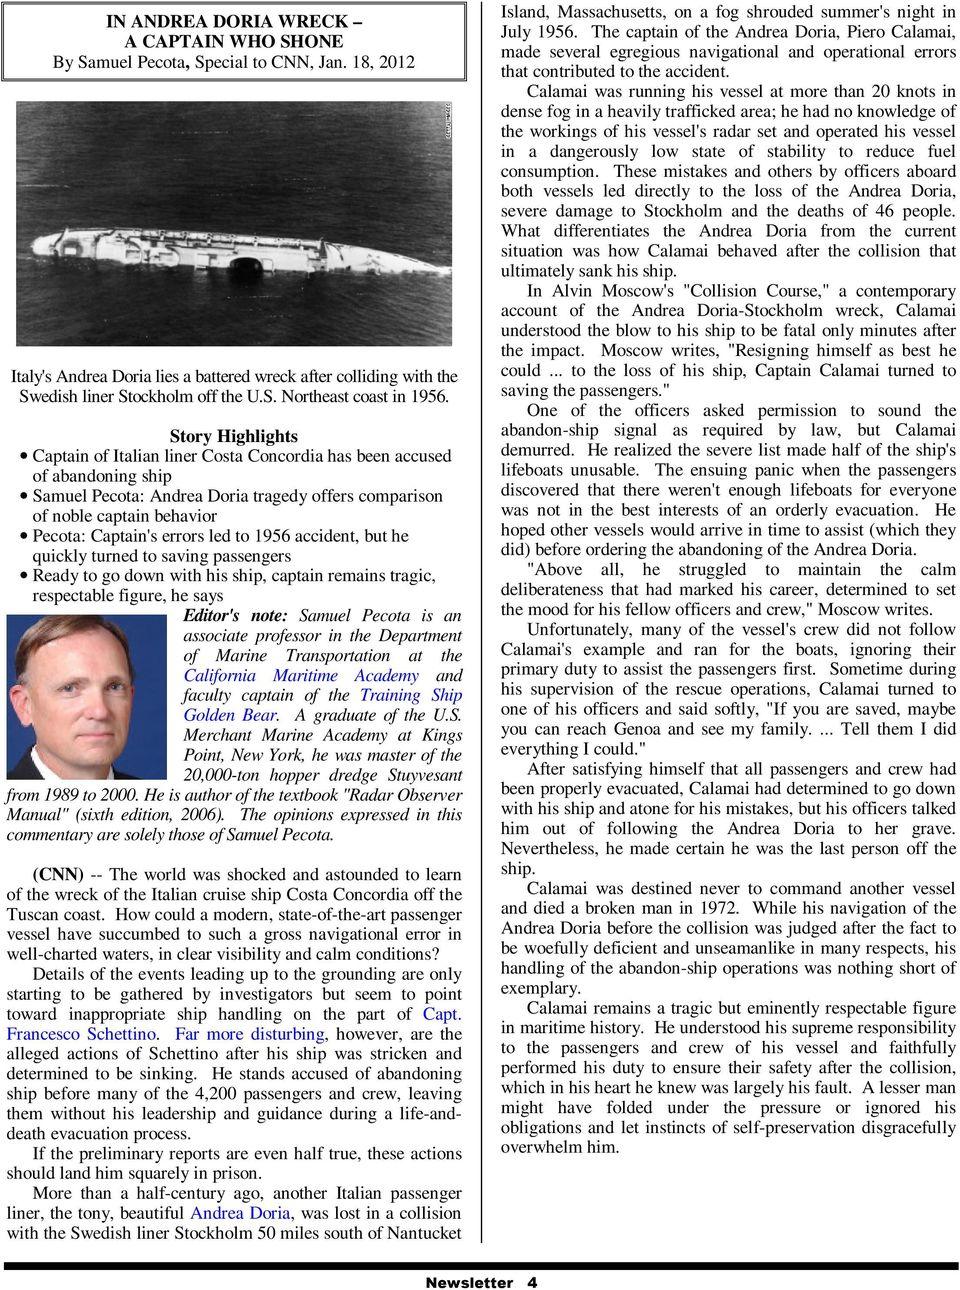 led to 1956 accident, but he quickly turned to saving passengers Ready to go down with his ship, captain remains tragic, respectable figure, he says Editor's note: Samuel Pecota is an associate